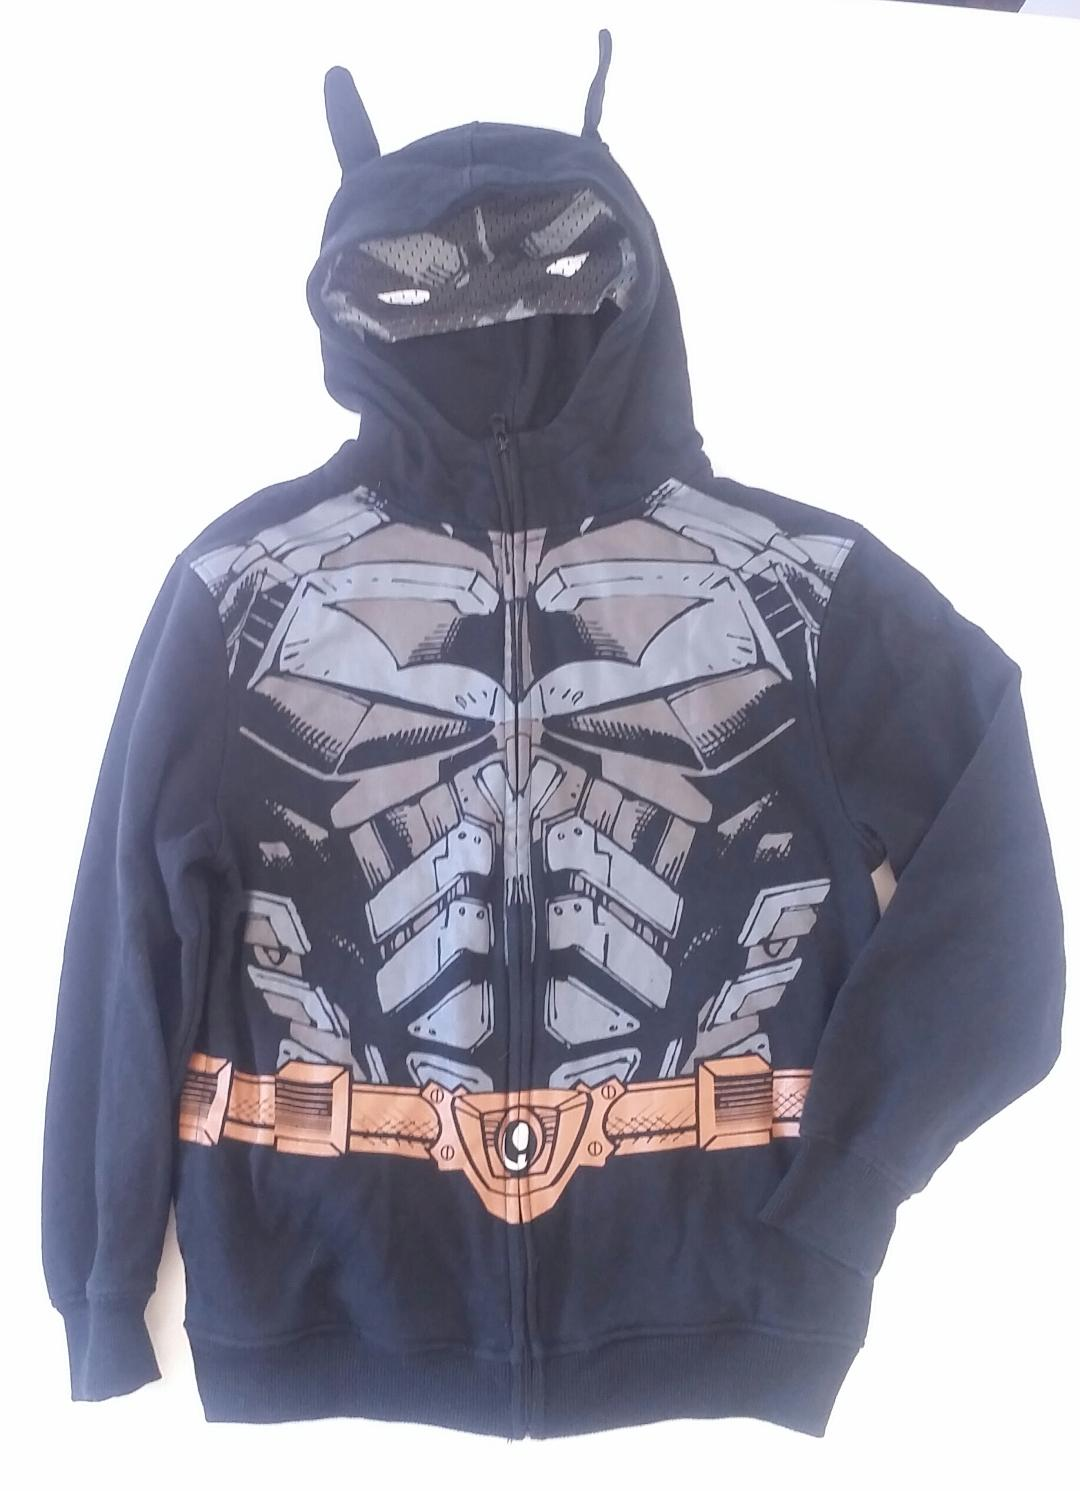 Batman-14-YEARS-Jacket_2158639A.jpg